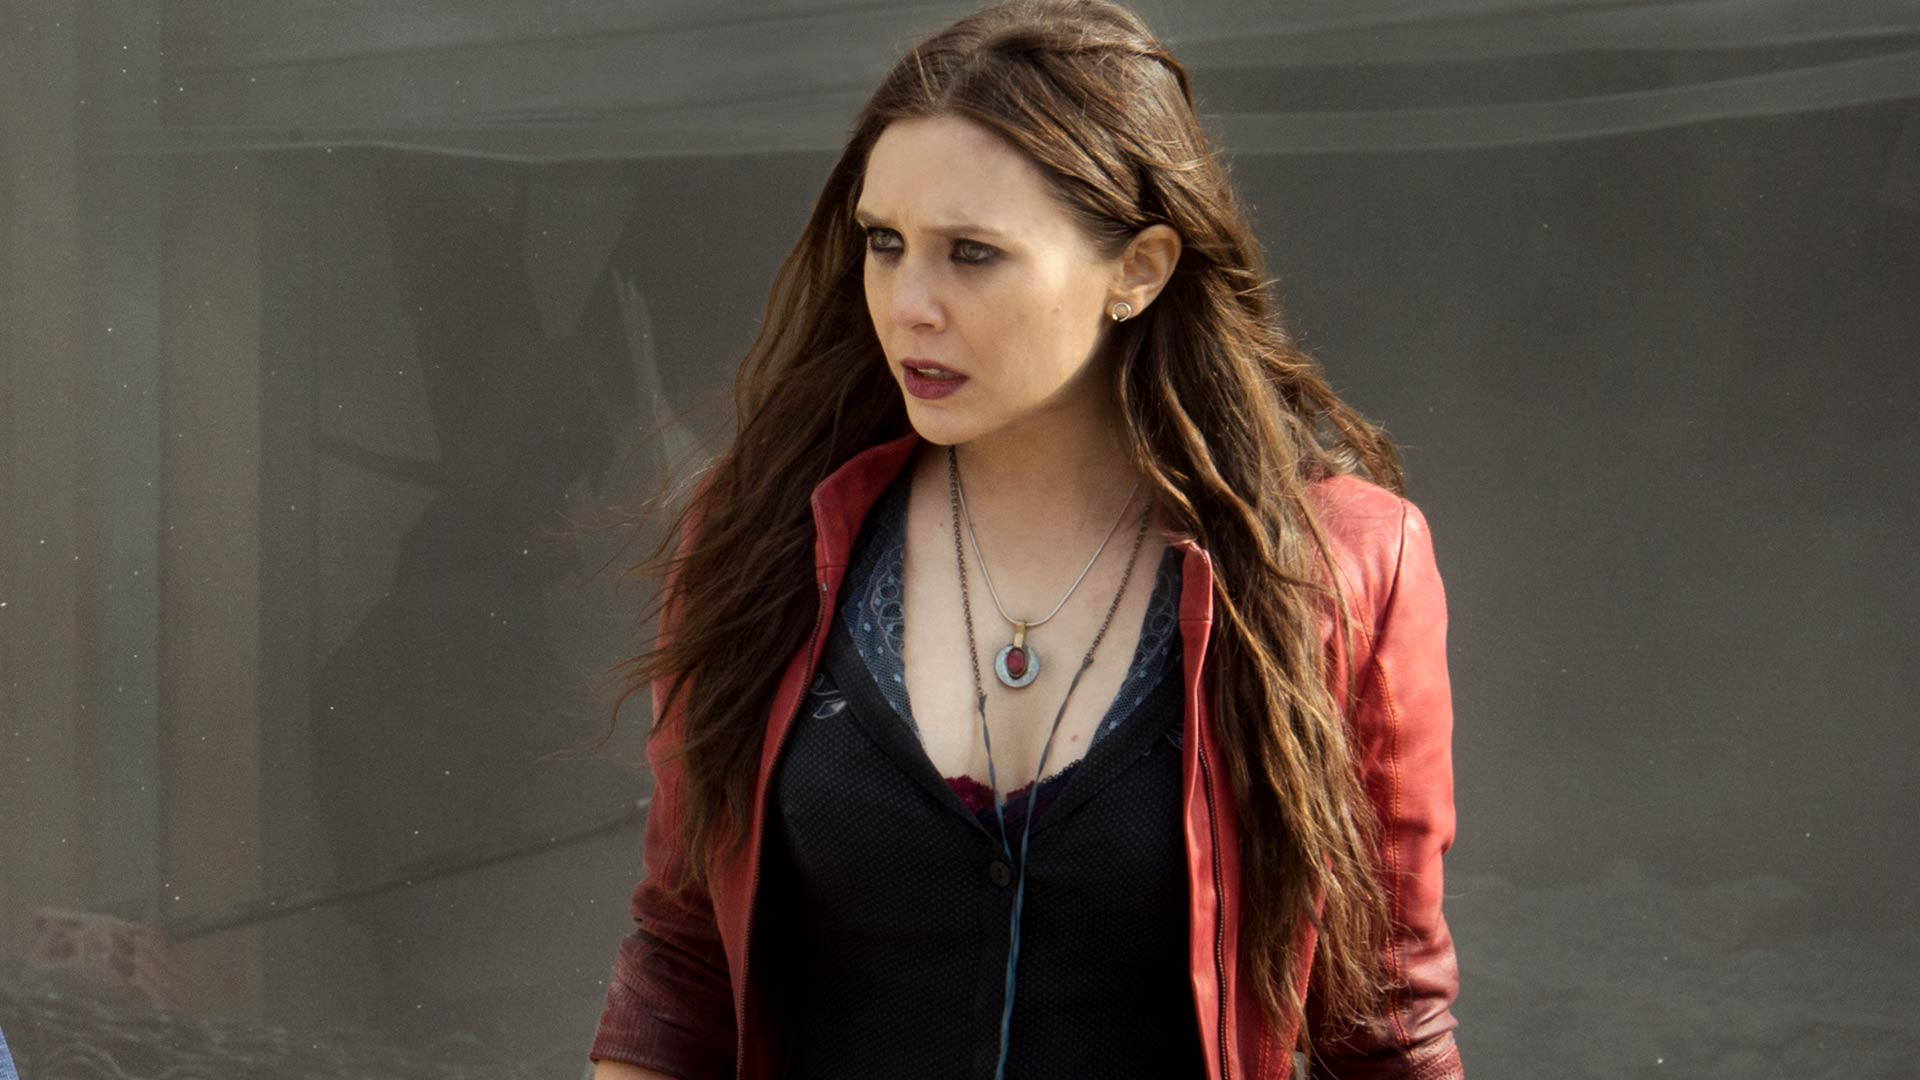 Free Download Scarlet Witch In Avengers Age Of Ultron Wallpaper Hd